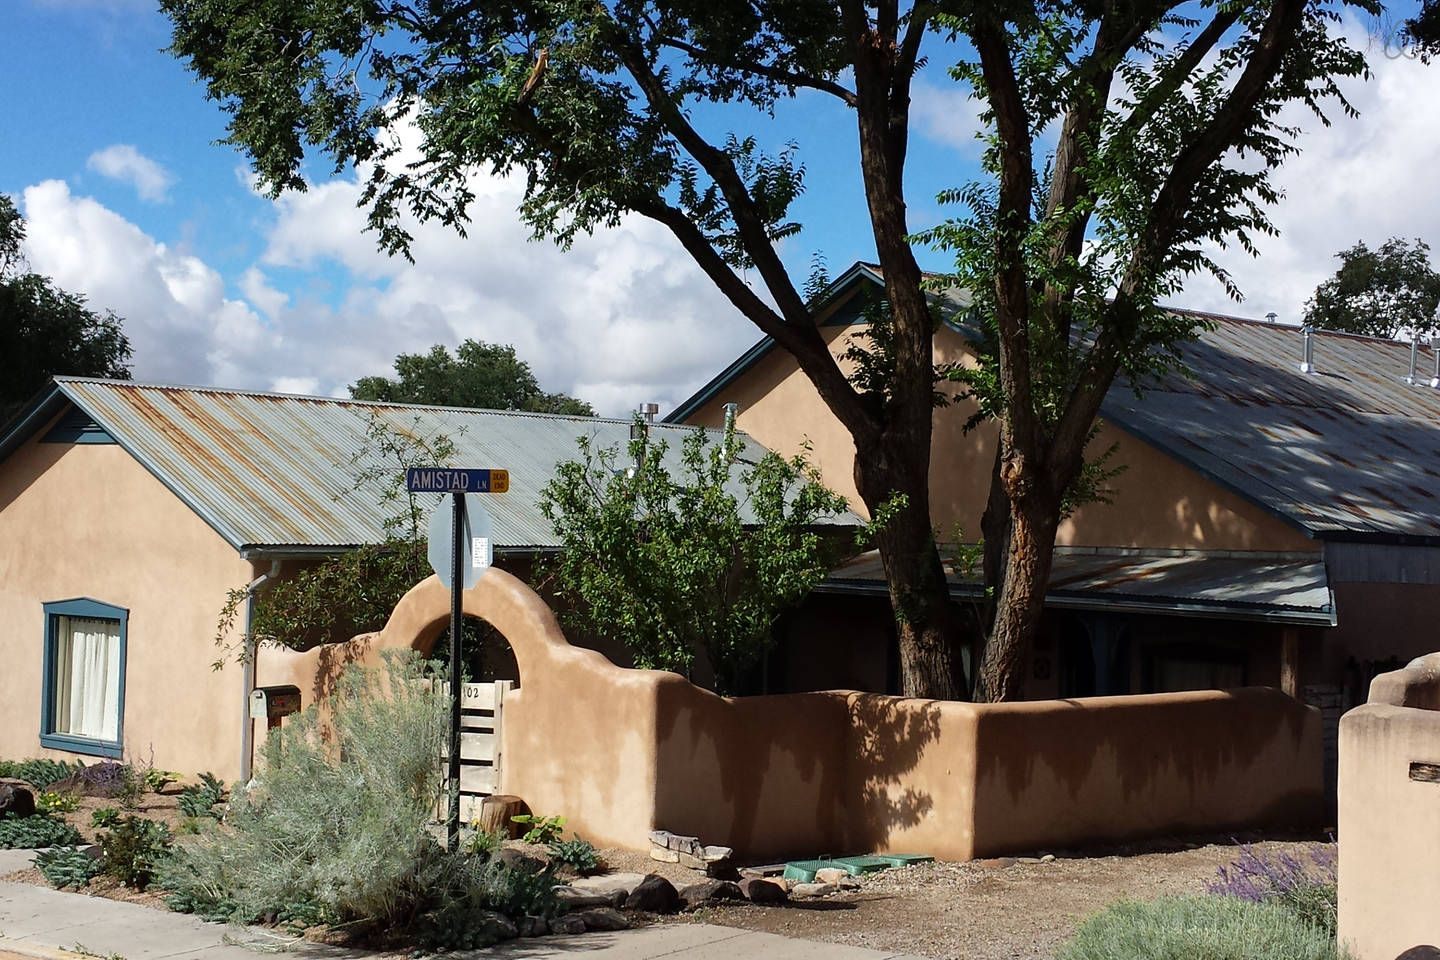 Historic Mill House Apartment 1 Vacation Rental In Taos New Mexico View More Taosnewmexicovacationrentals